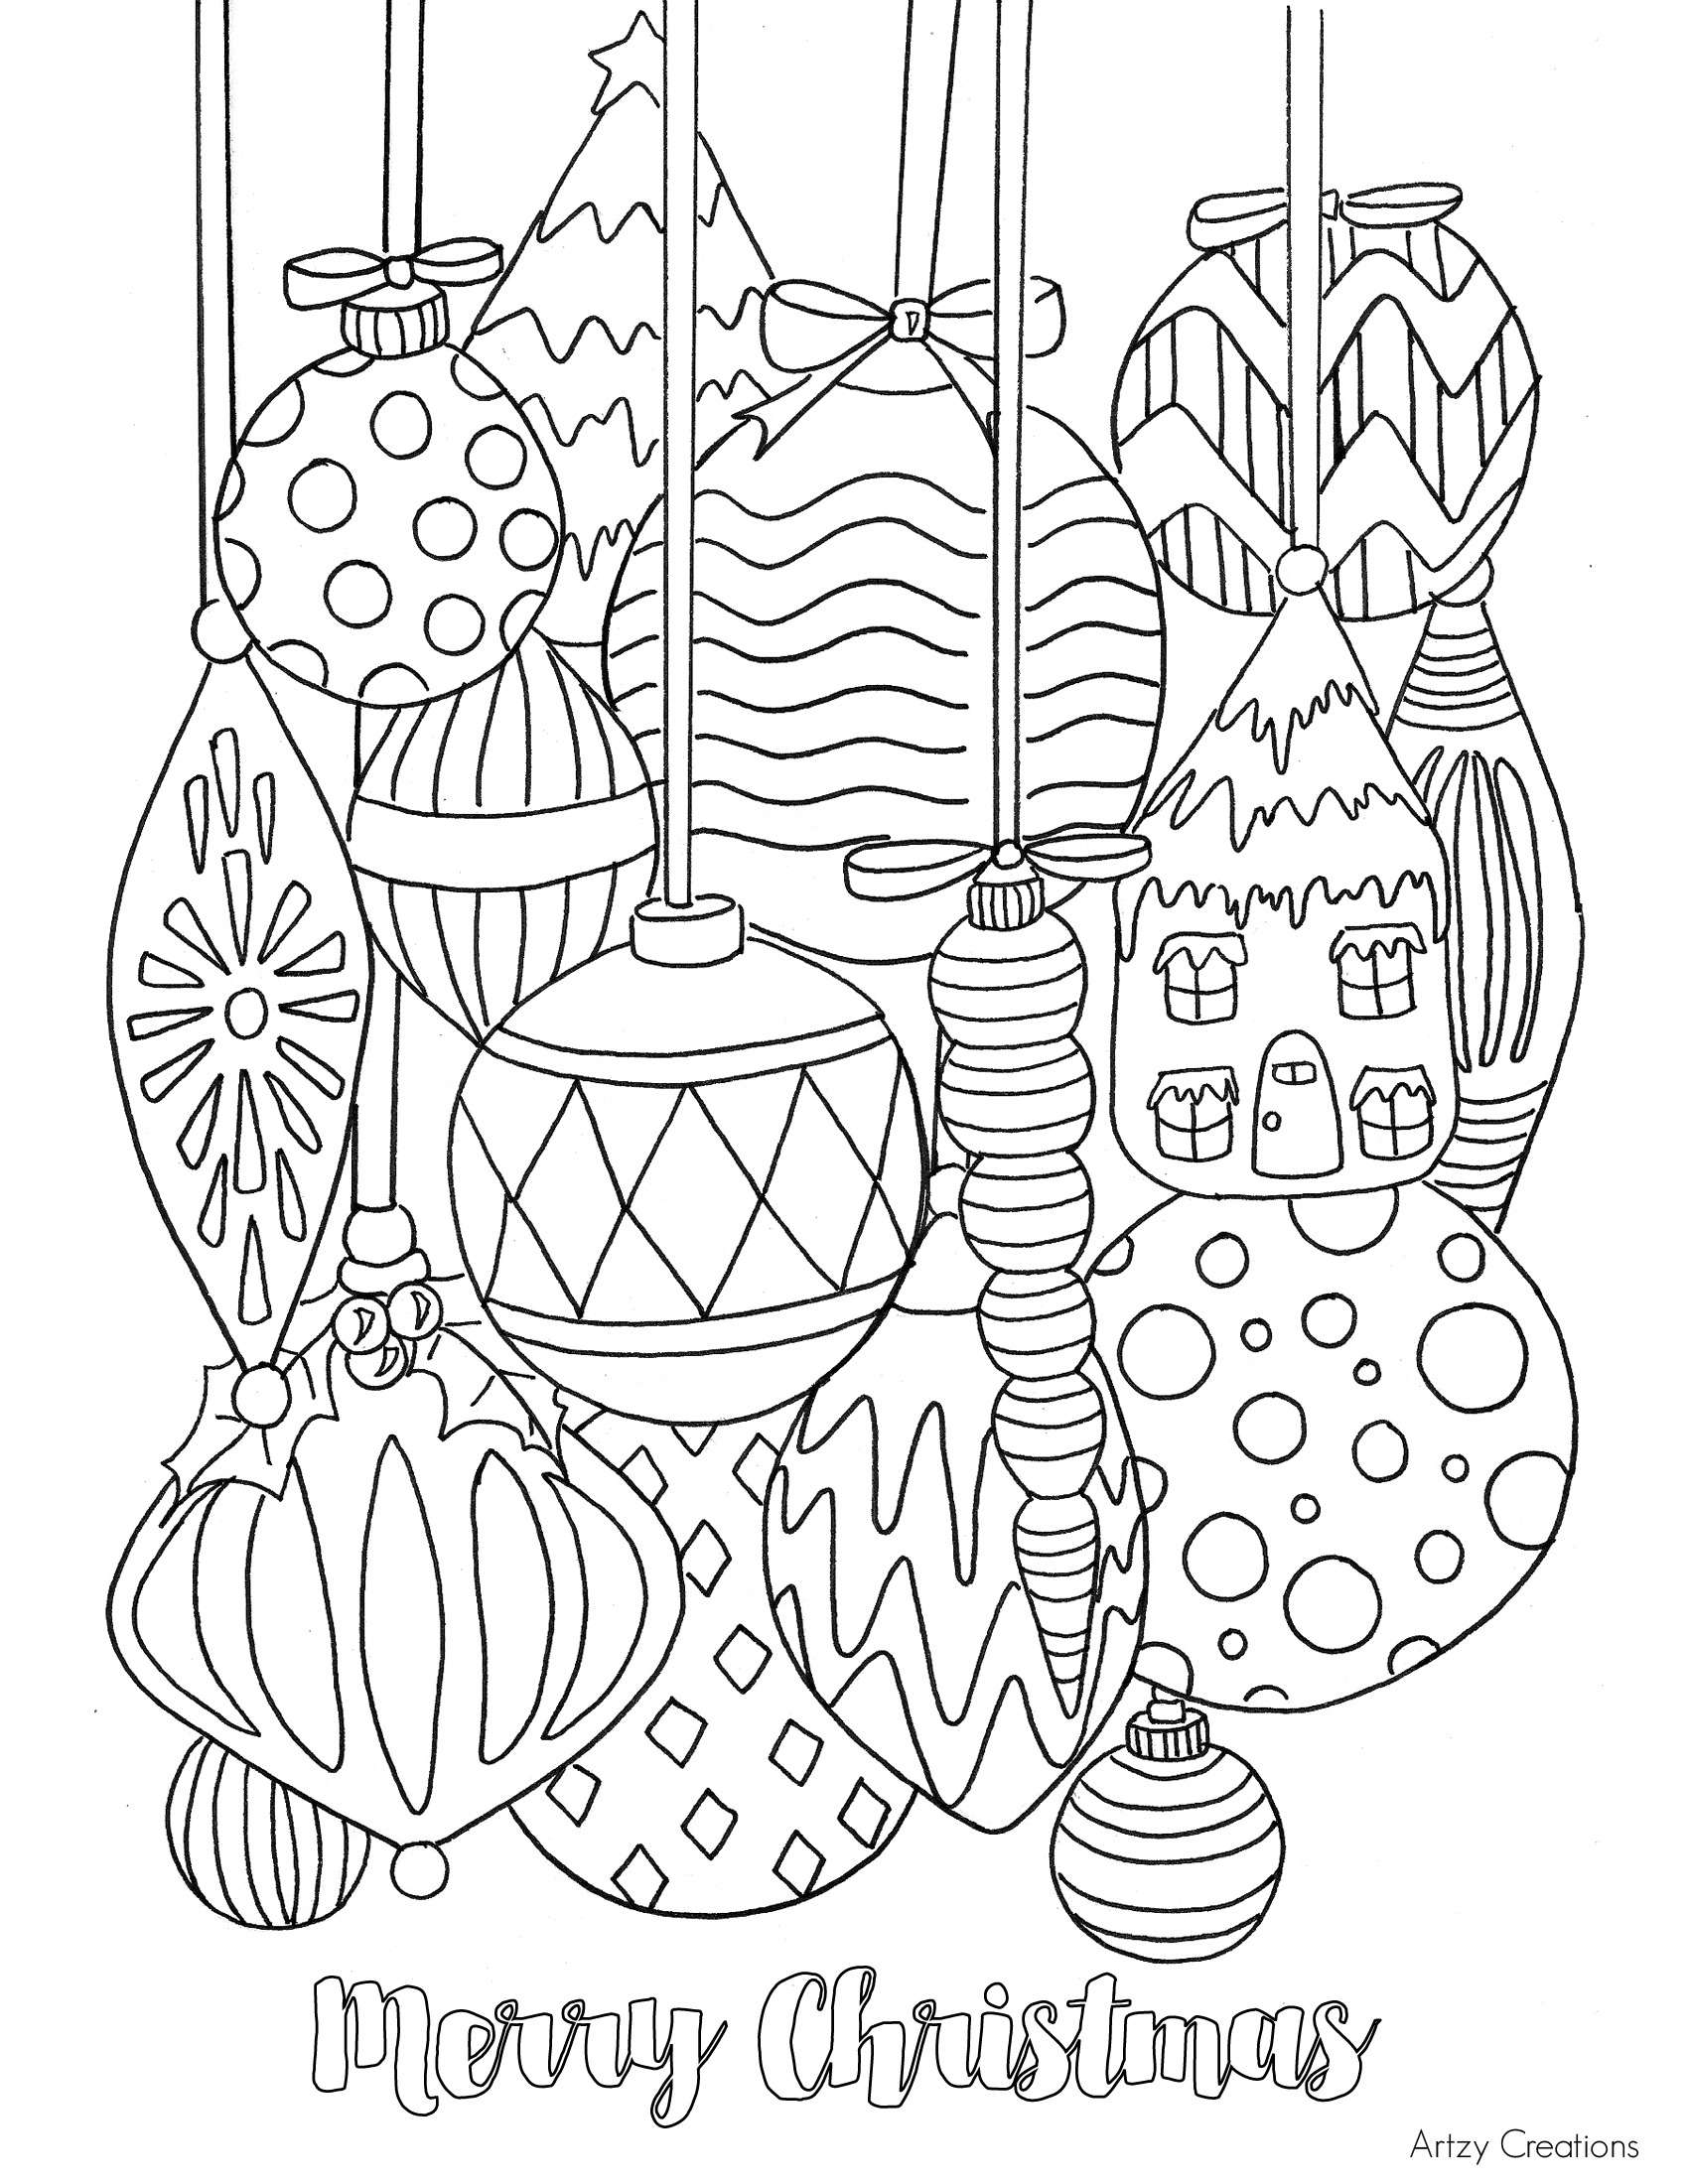 Christmas Lego Coloring Pages With Train